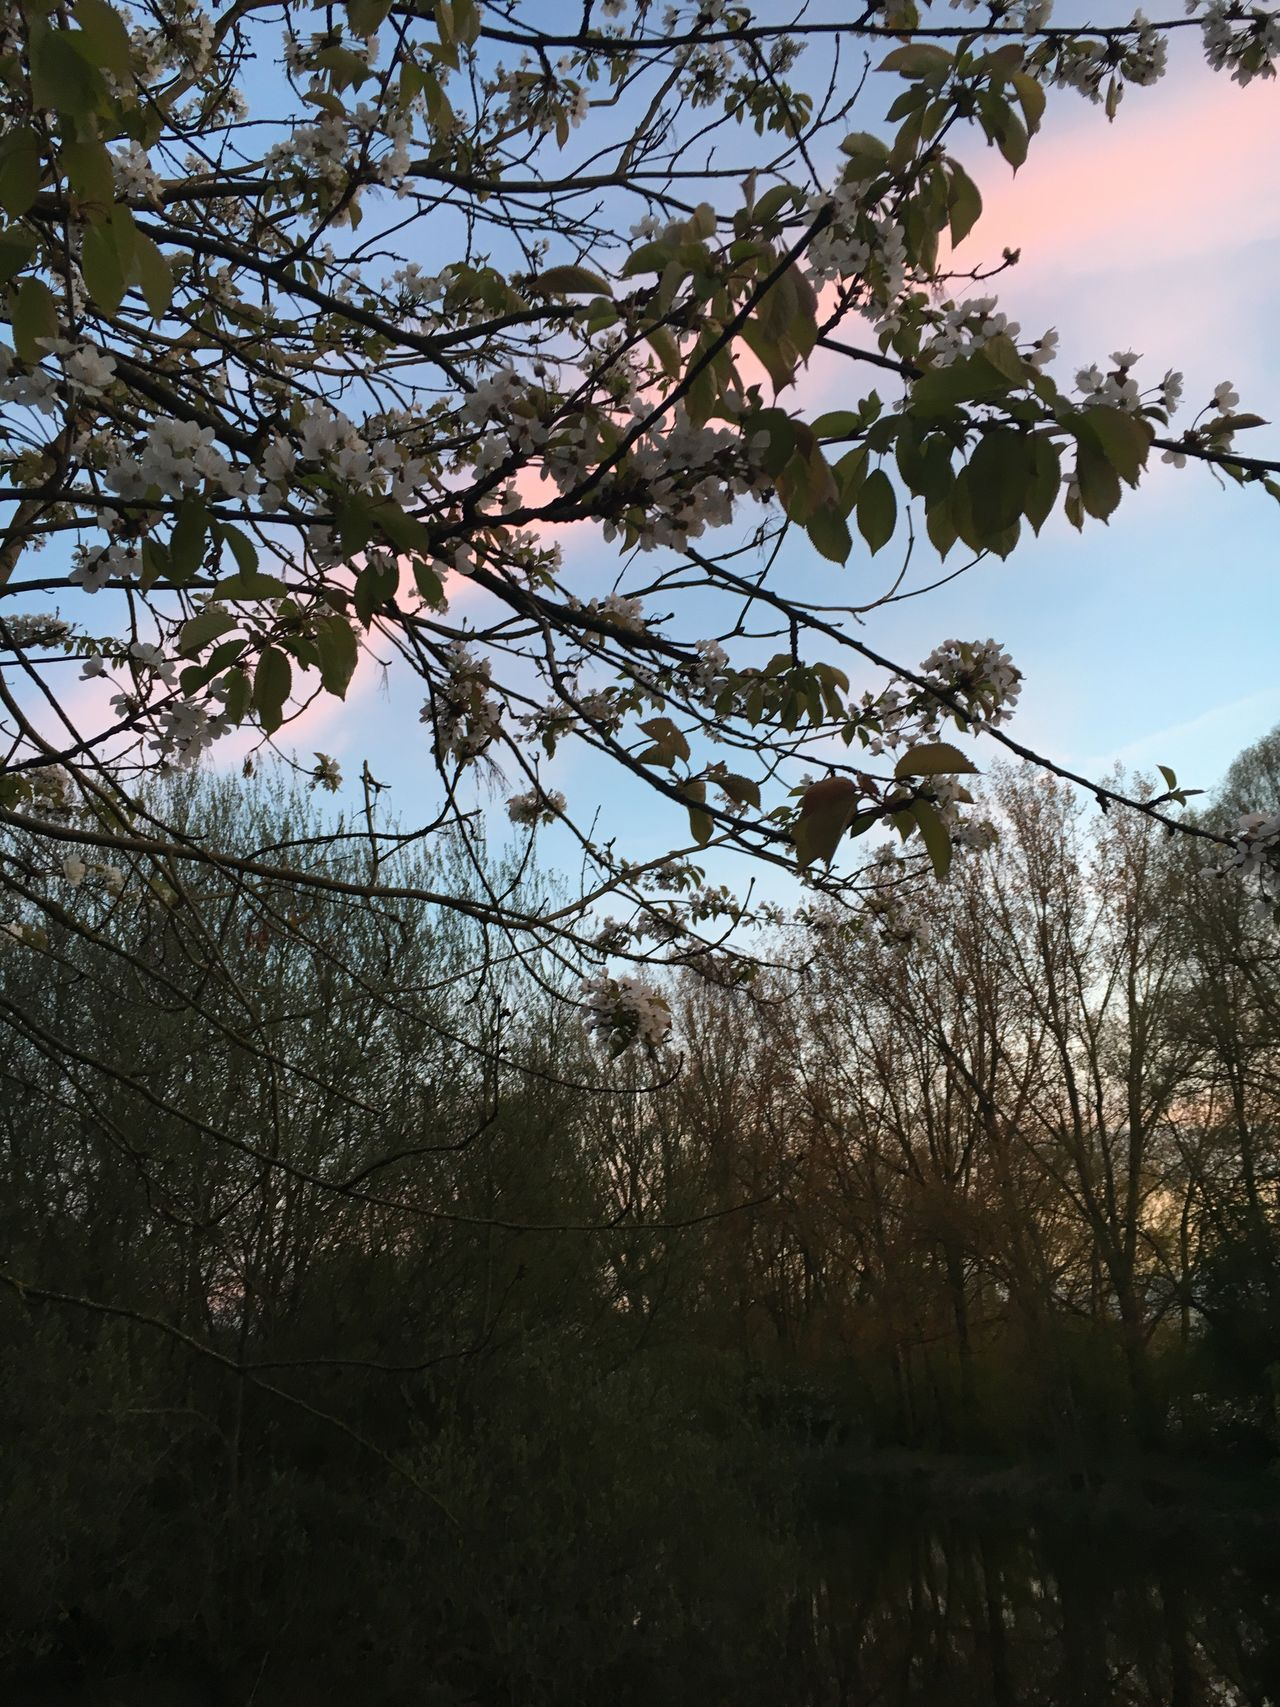 Tree Low Angle View Branch Growth Nature Sky Outdoors No People Beauty In Nature Day Architecture Sunset Clouds